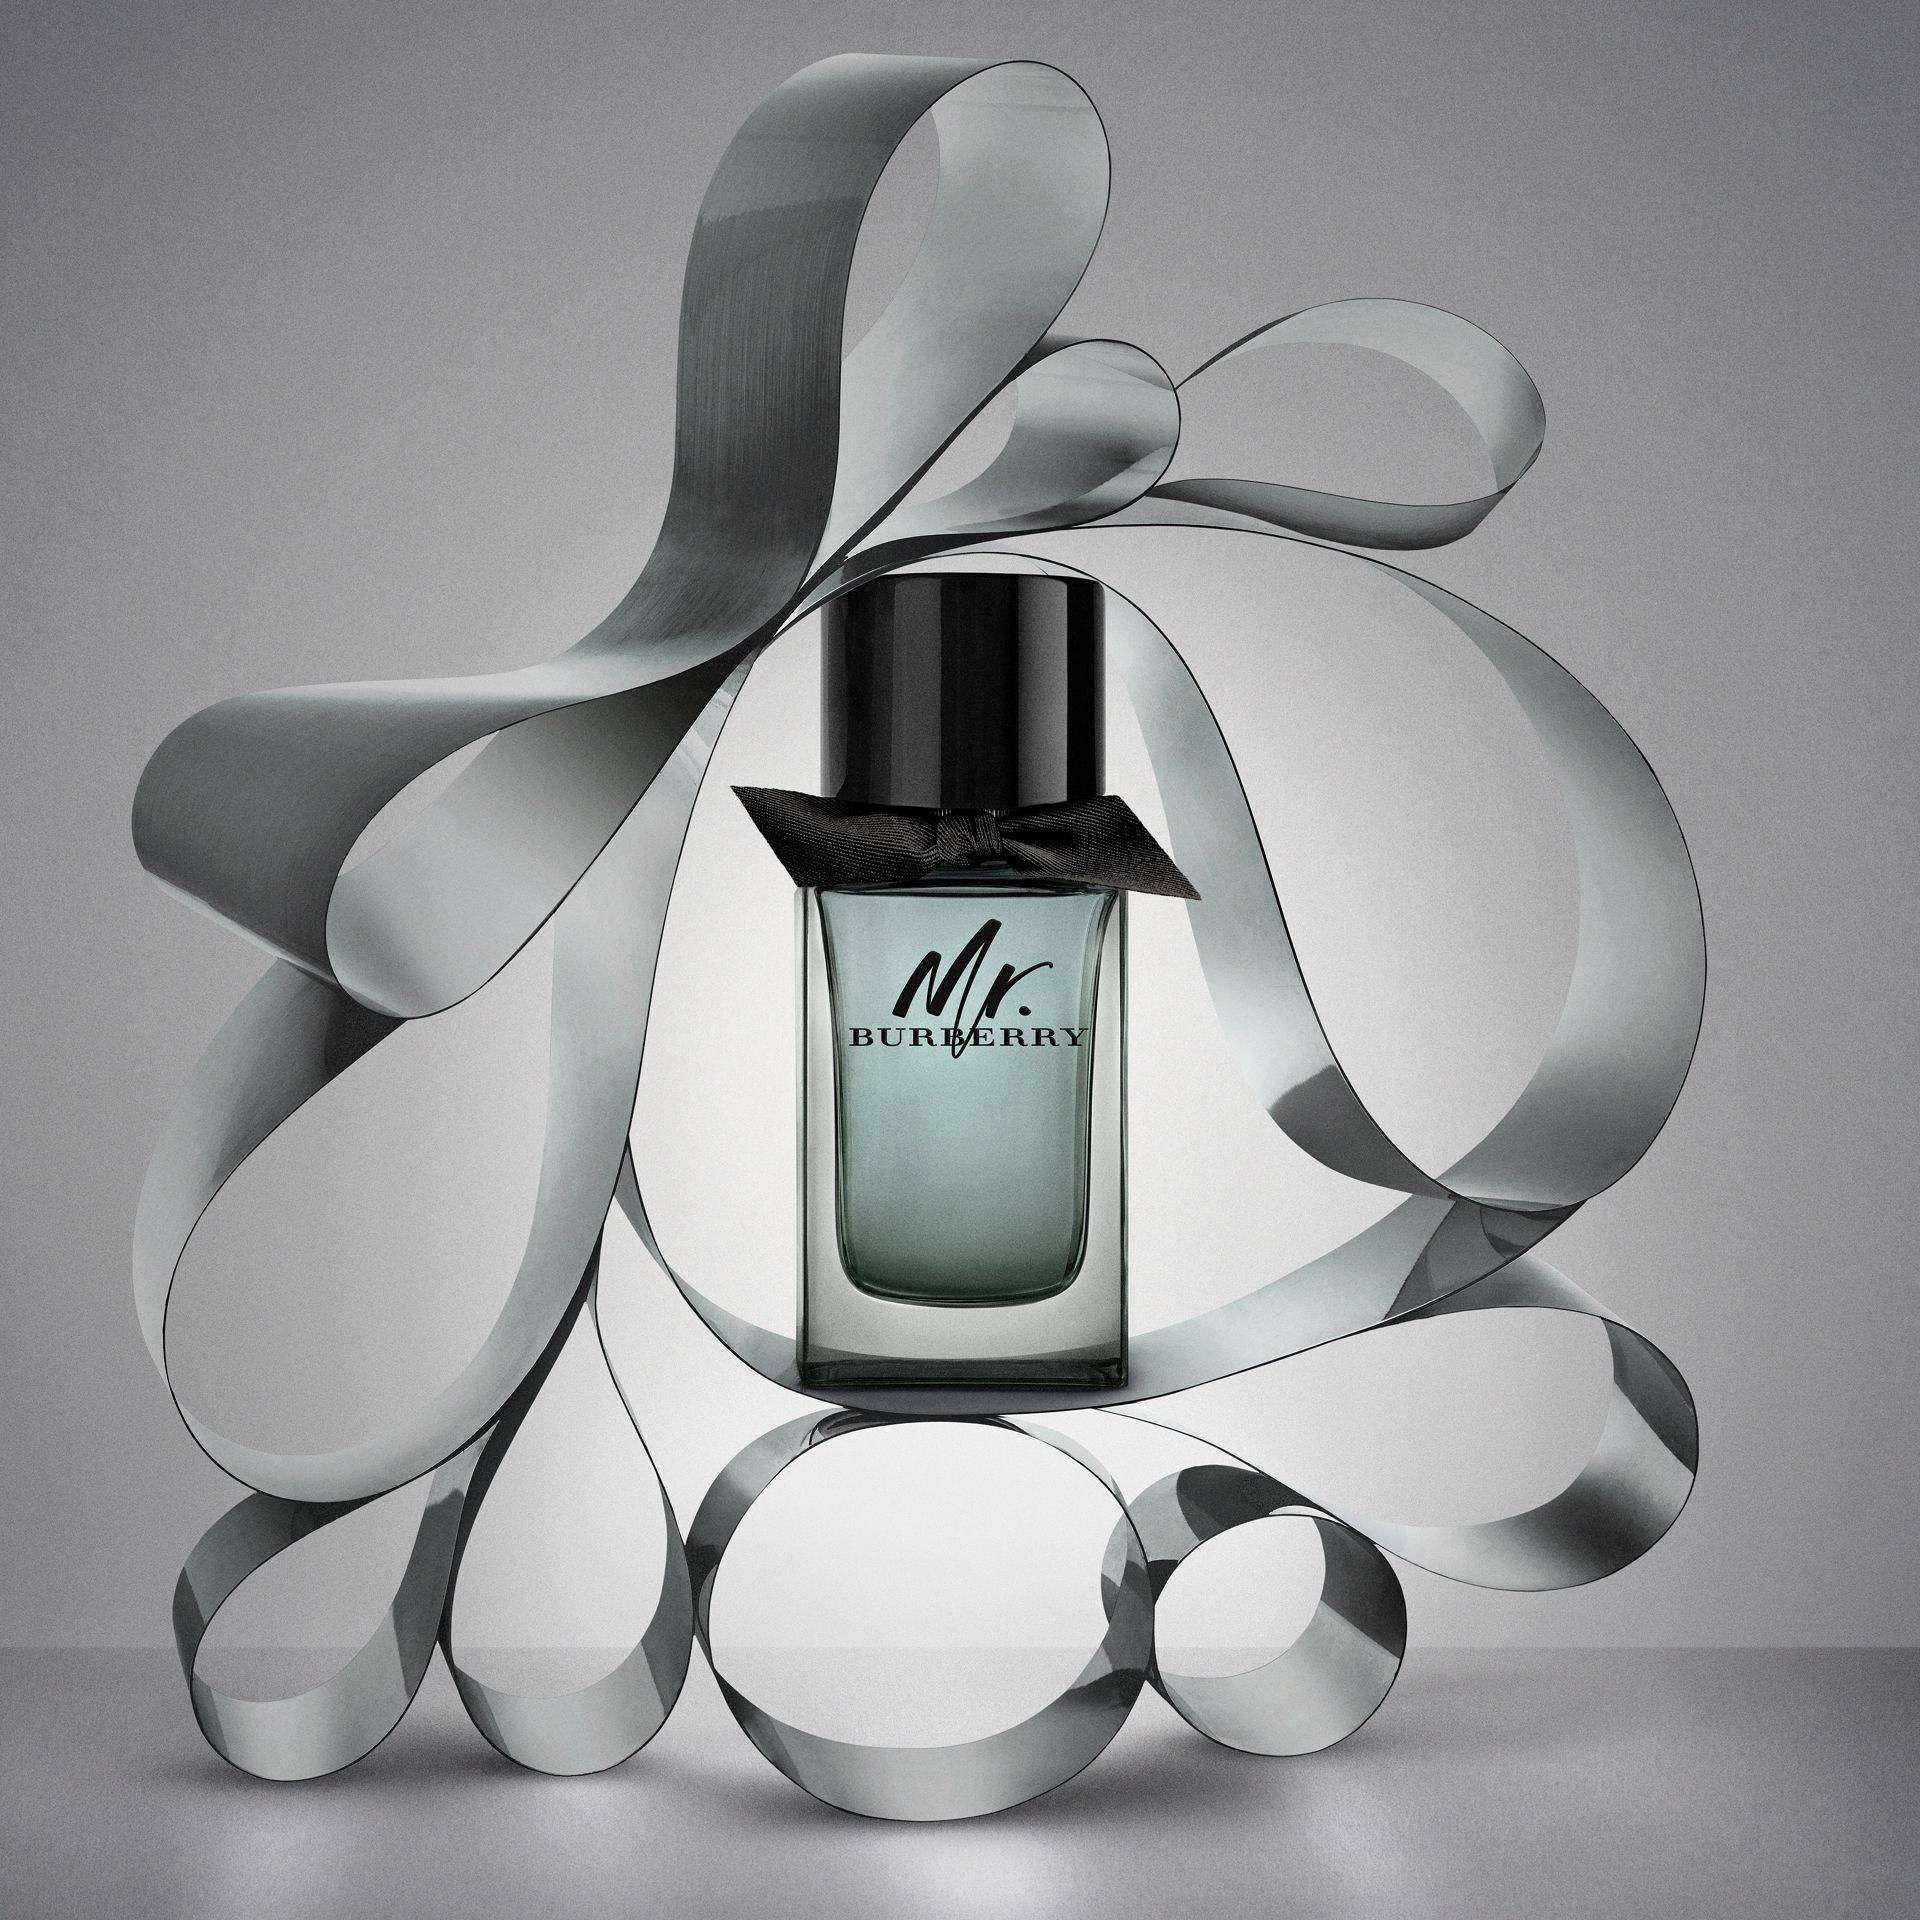 Mr. Burberry Eau de Toilette Festive Luxury Set in No Colour - Men | Burberry - gallery image 2